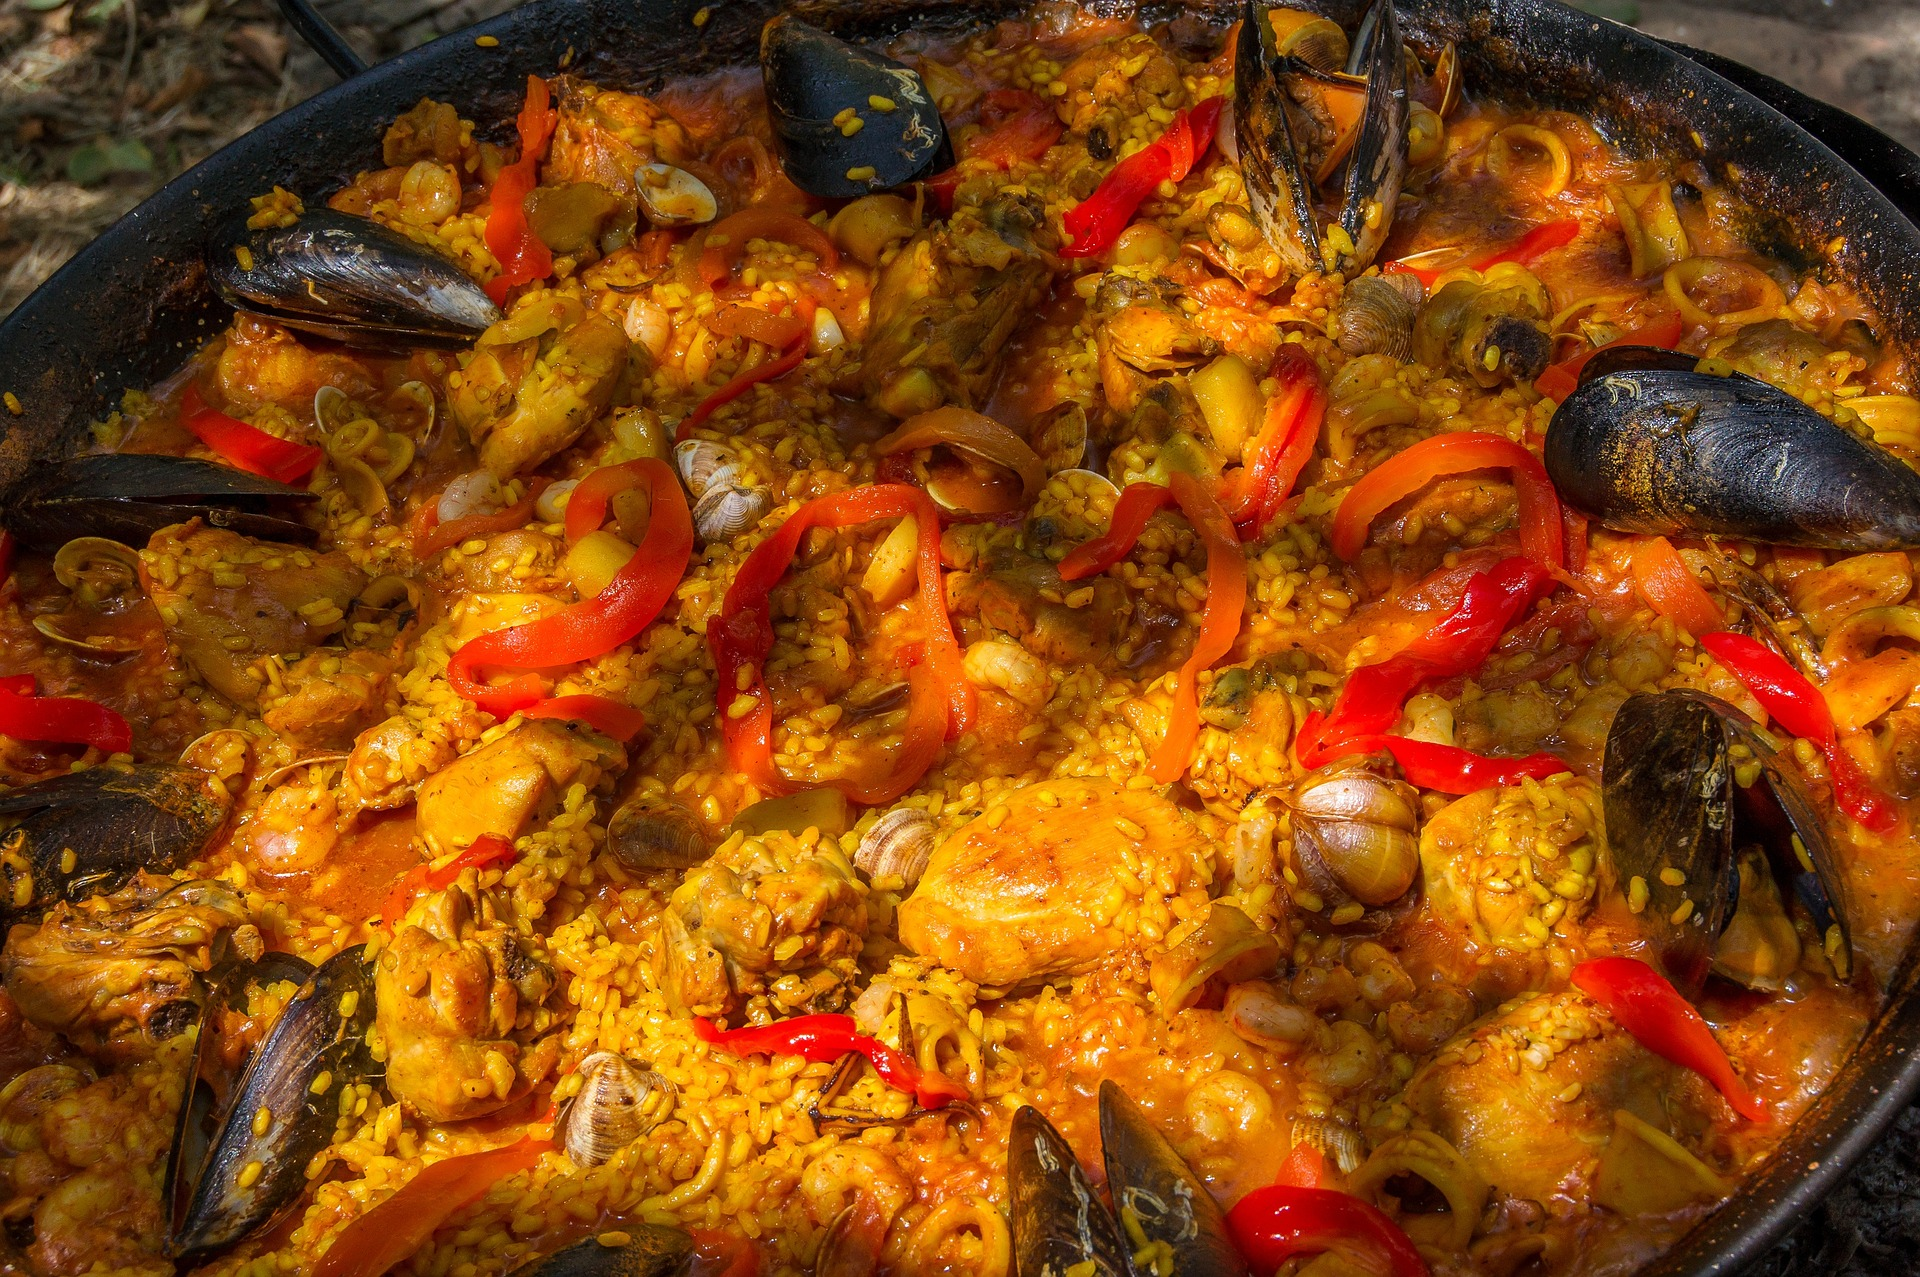 What a great Paella looks like